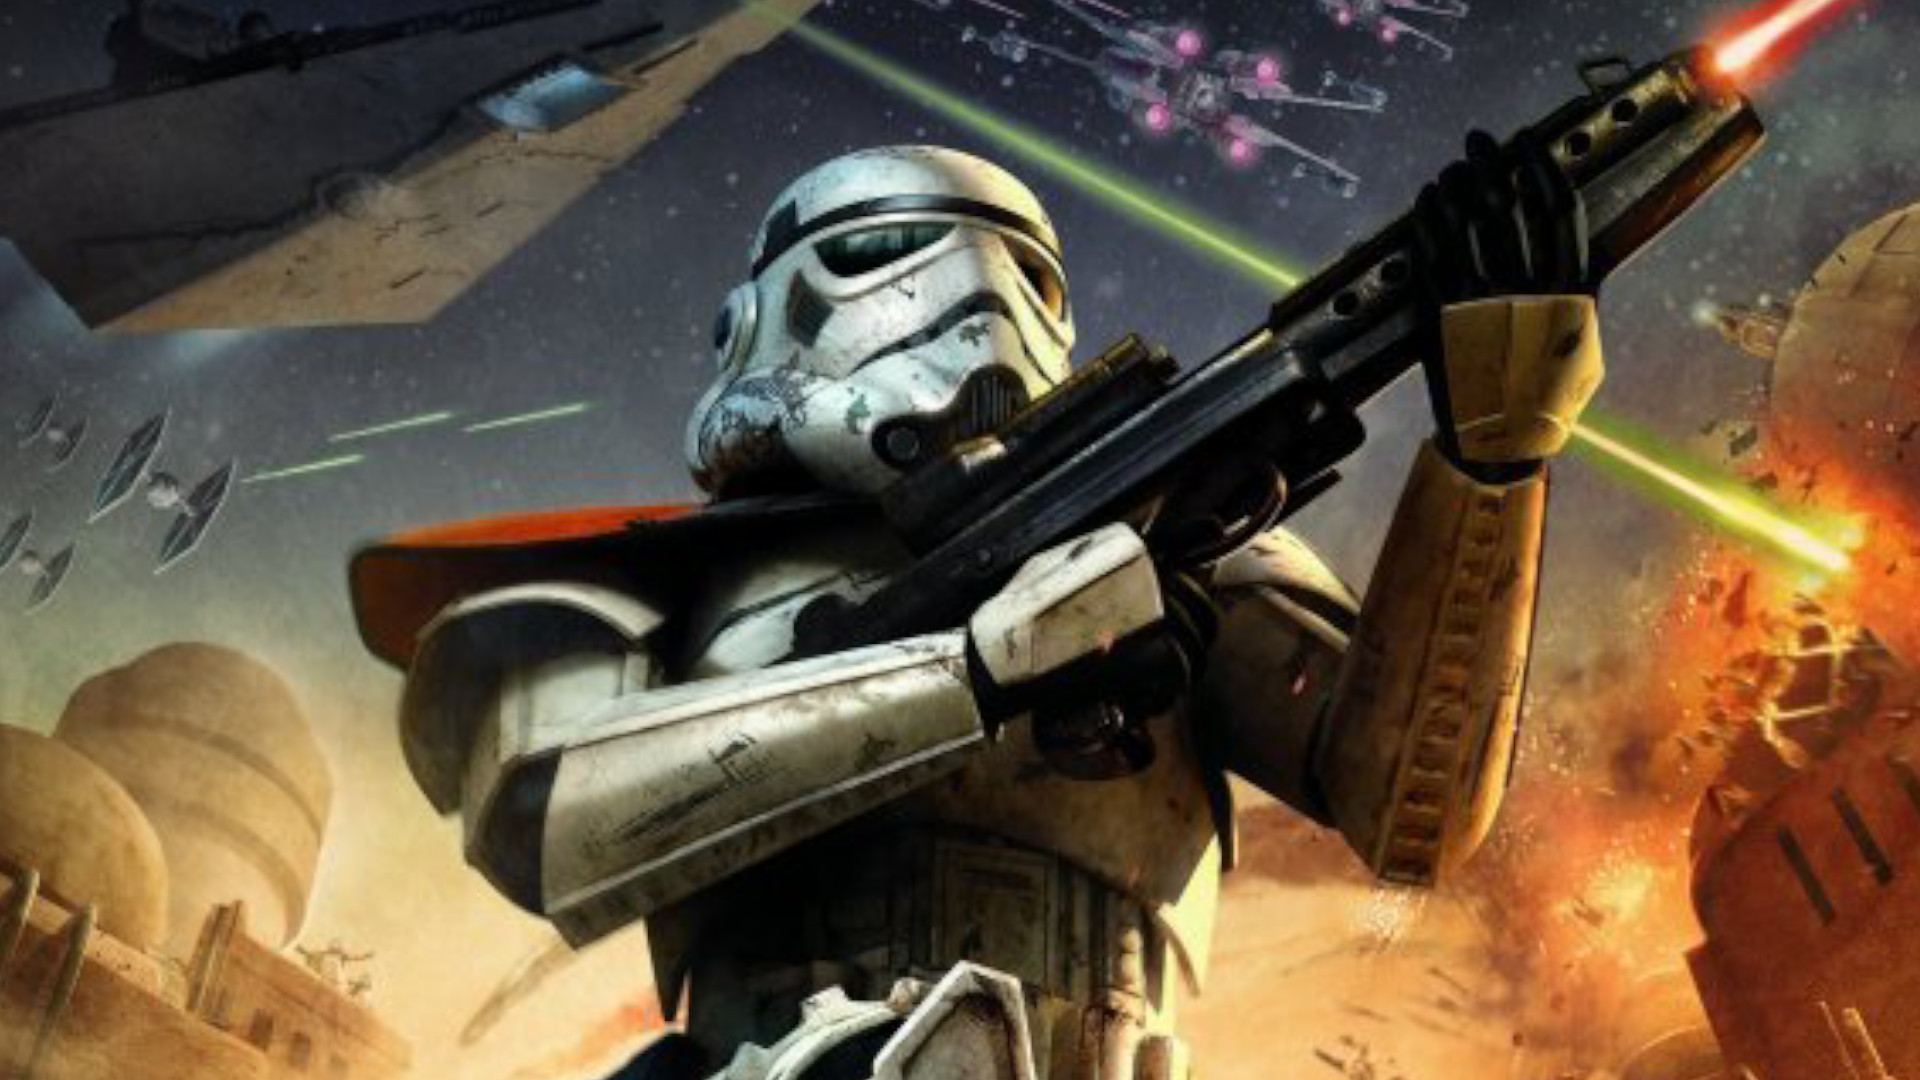 Star Wars Battlefront 3 Leaks On Steam Is Totally Fake Pcgamesn